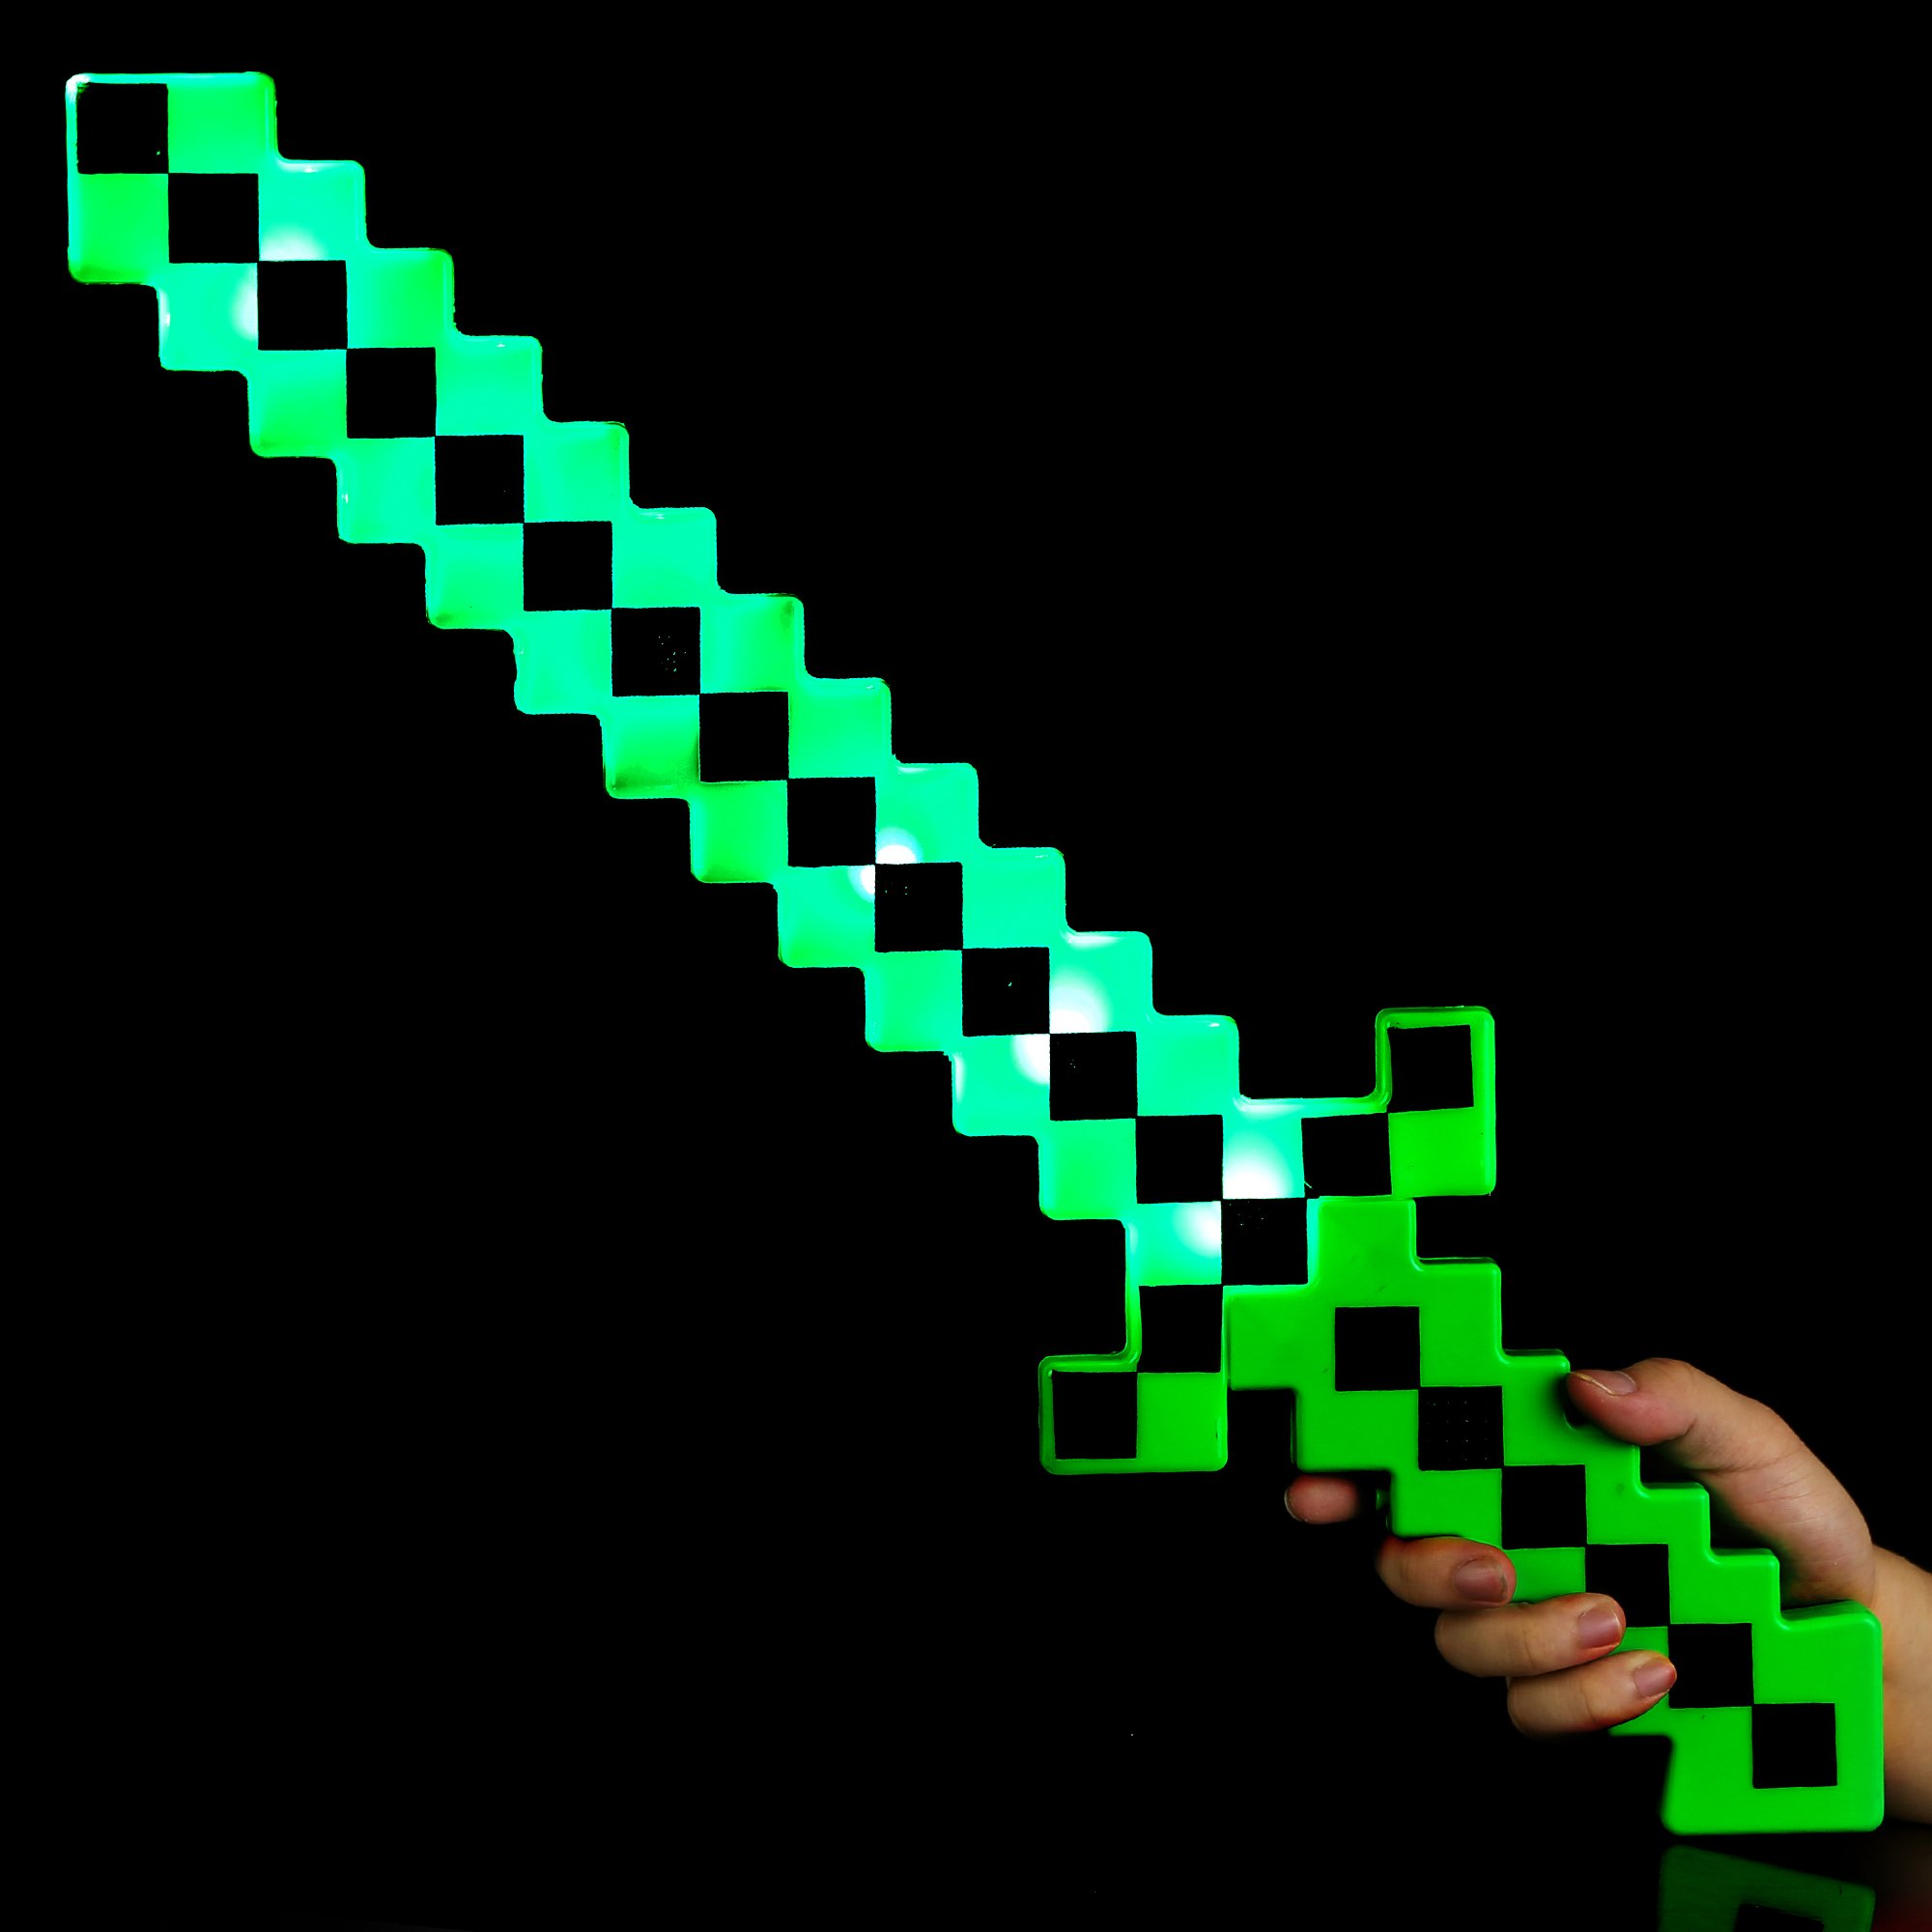 Fun Central BC972, 1 Pc, 24 Inches Green LED Light Up Pixel Sword, Kids Toy Sword, Light Sword Toy, Flashing Sword, LED Sword